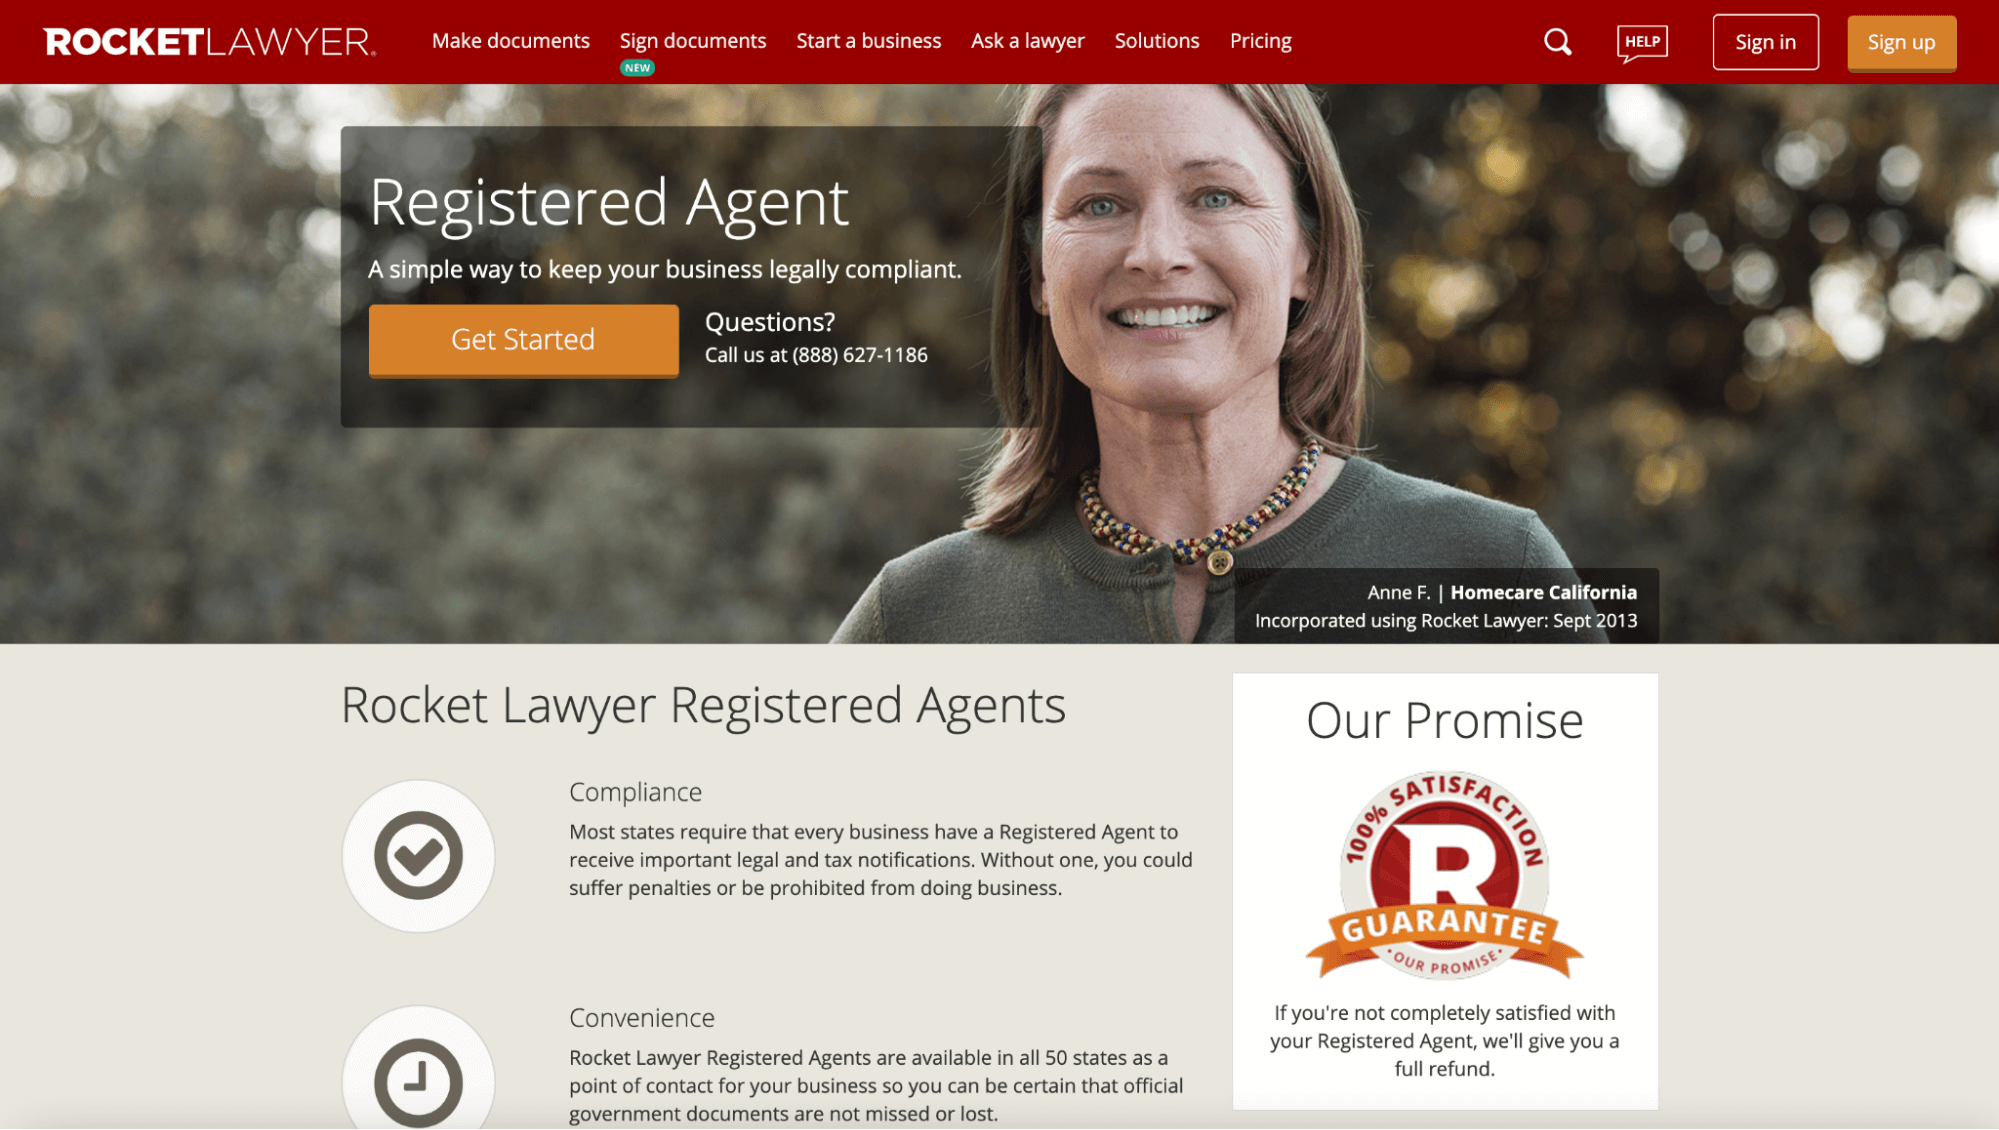 The Complete Guide to Being Your Own Registered Agent